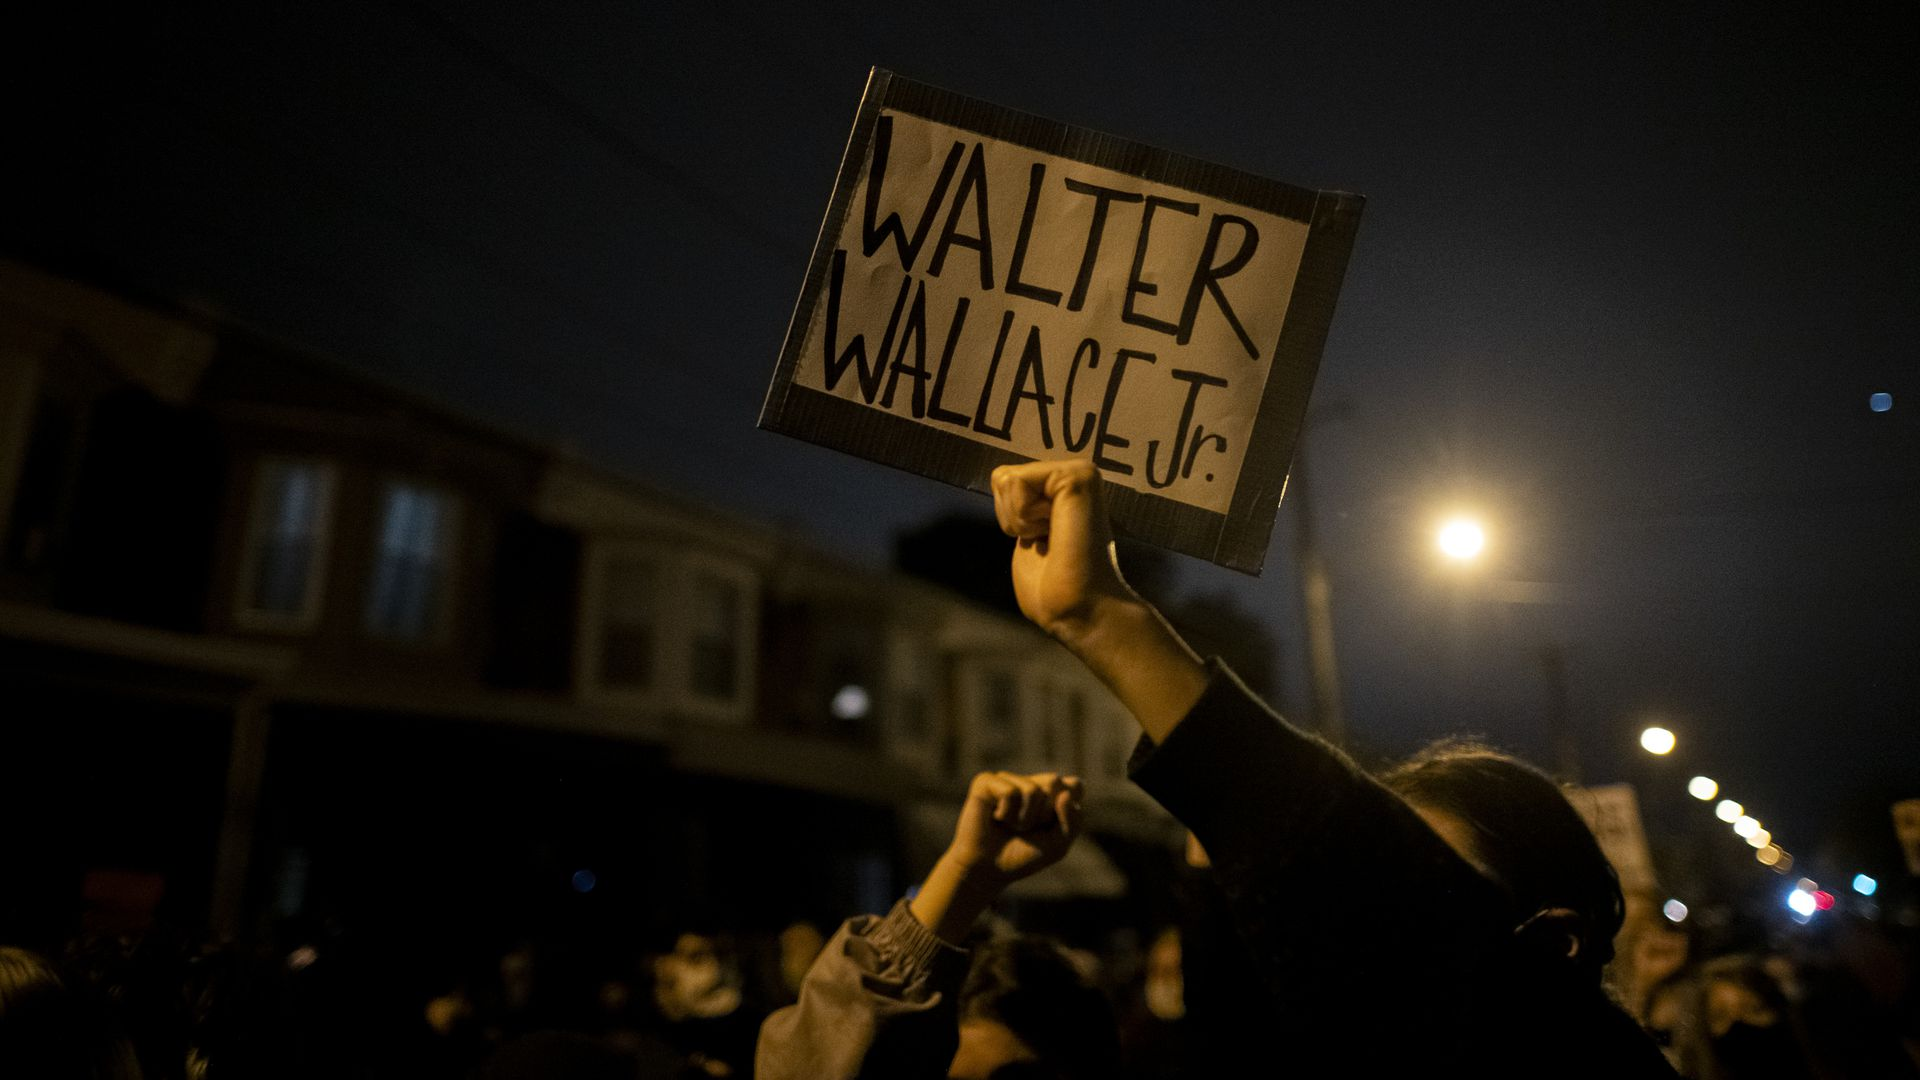 A demonstrator holding placard during a protest near the location where Walter Wallace Jr. was killed by two police officers on Oct. 26, 2020. Photo: Mark Makela/Getty Images